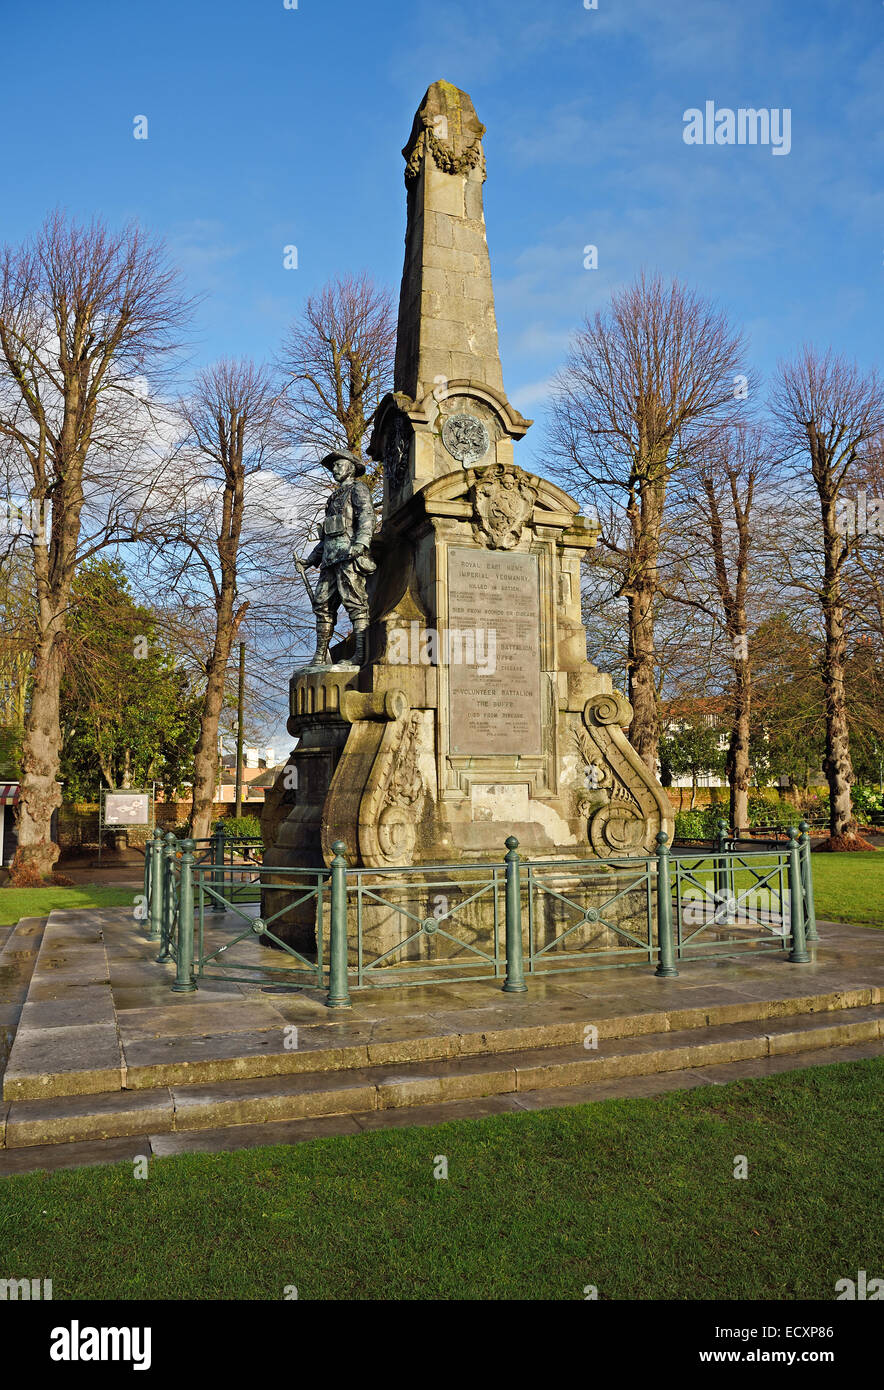 The South Africa Memorial, Dane John Gardens, Canterbury remembers Kent soldiers who died in the South African war - Stock Image